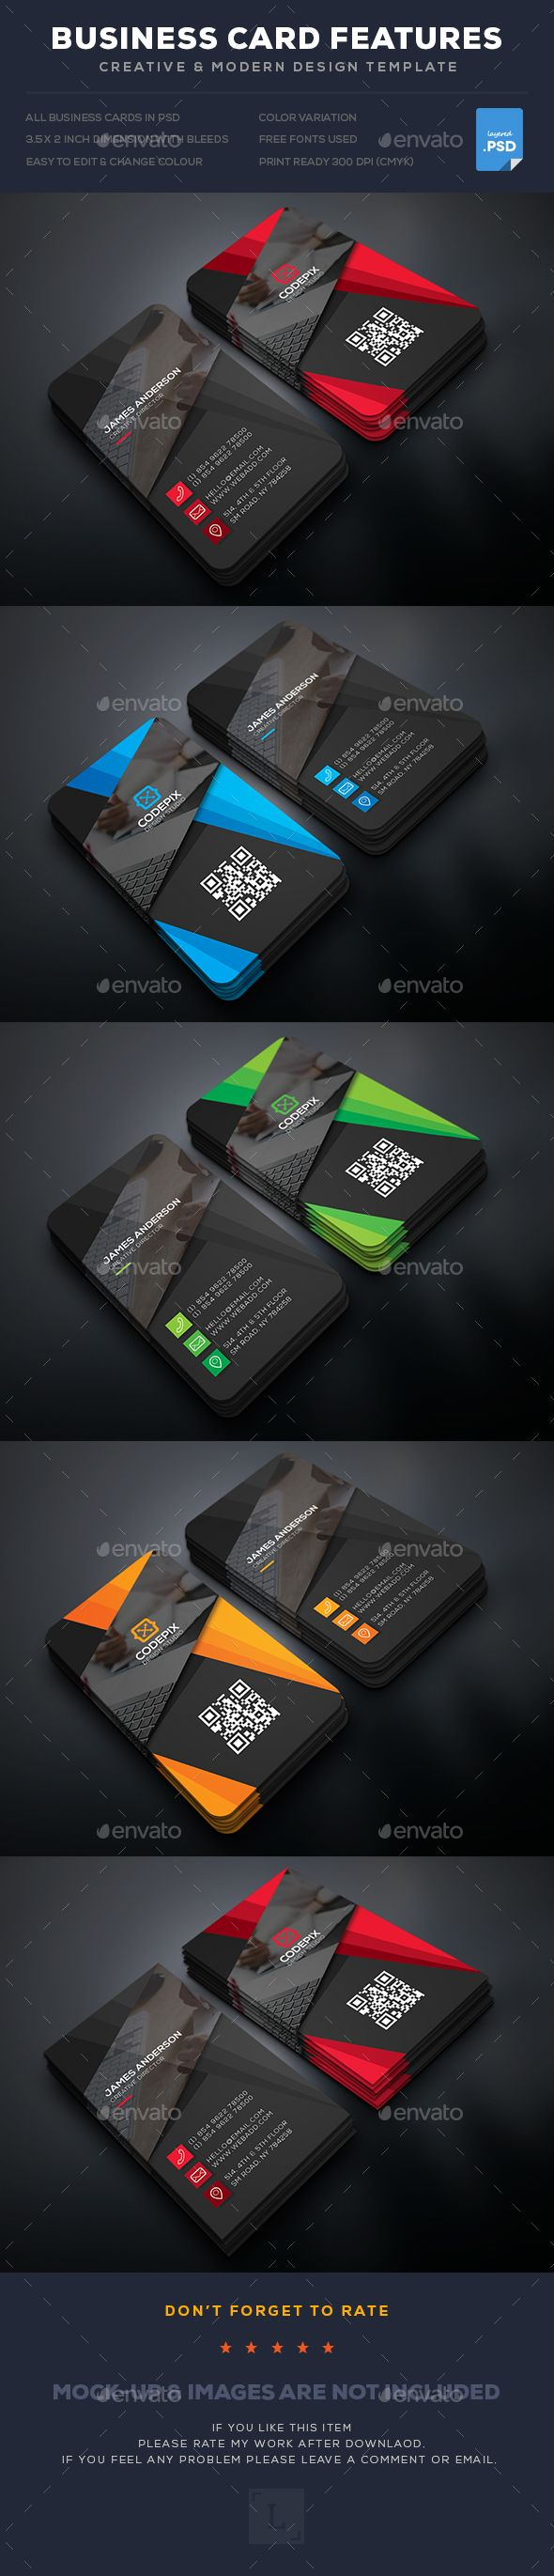 Business card printing free templates from nextdayflyers - Creative Business Card Business Card Templatespsd Templatesprint